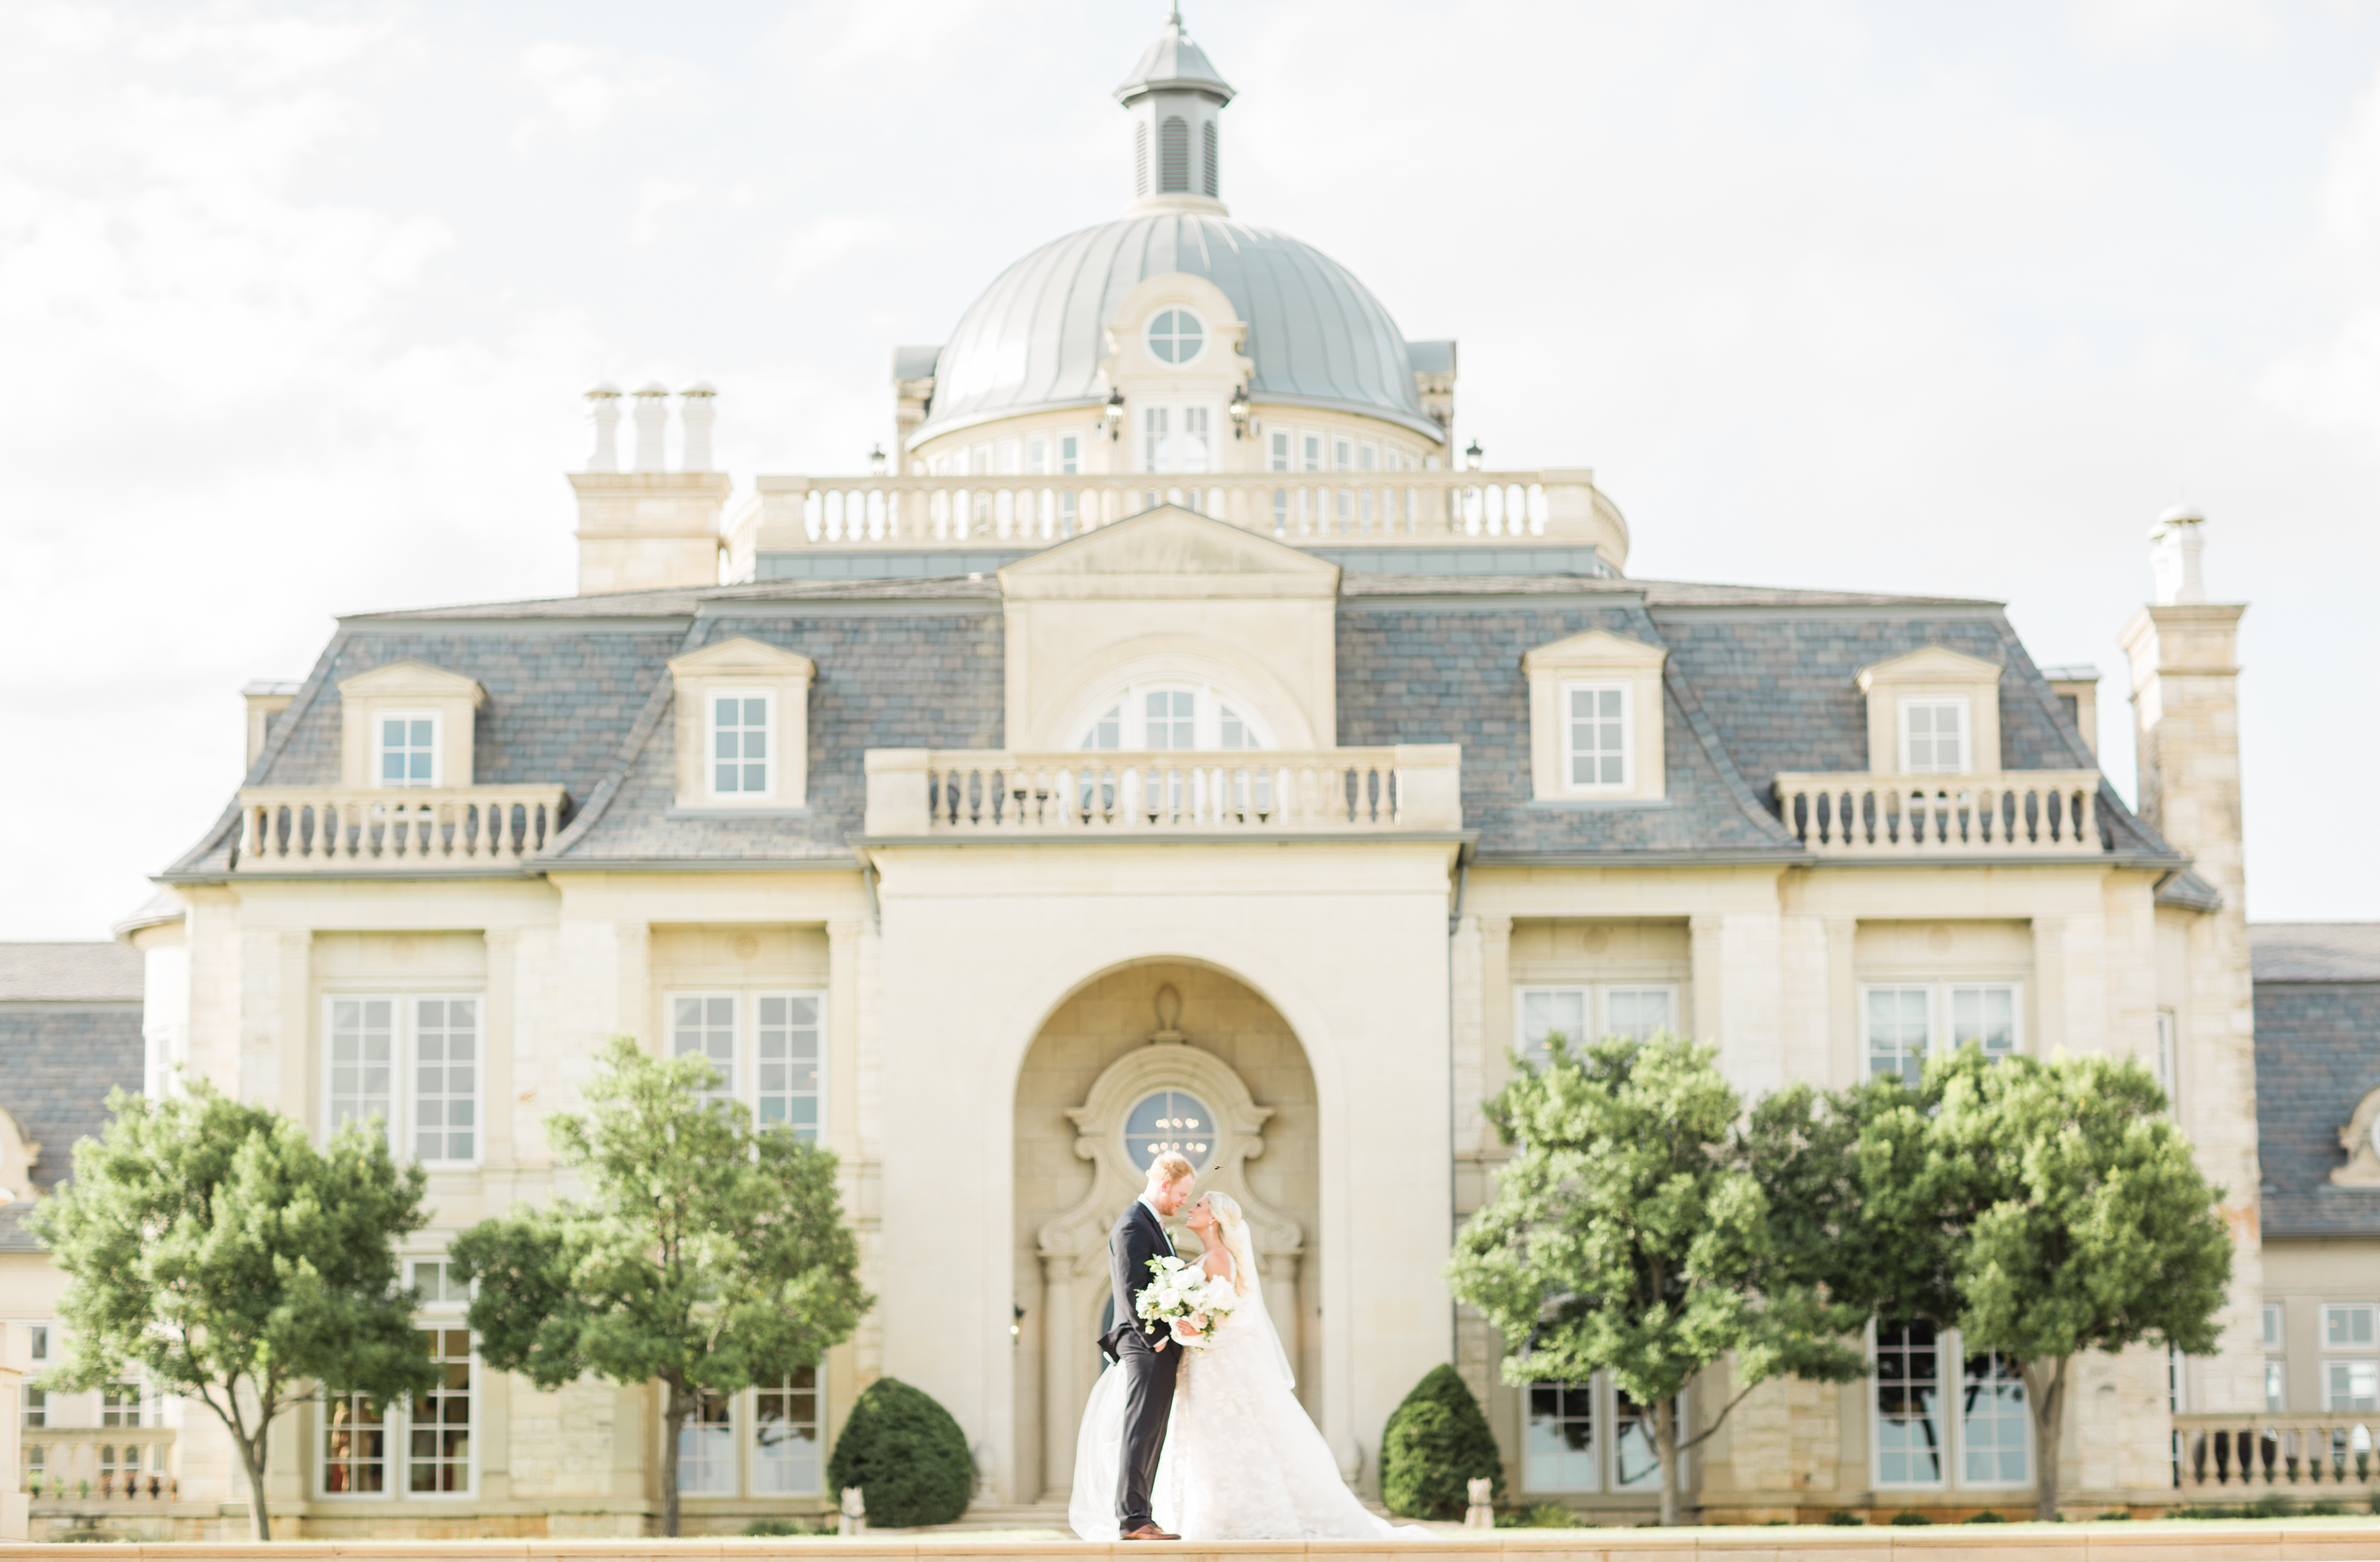 Exterior of the Olana Wedding Venue in Dallas, couple stands centered for their wedding day. Green trees surround venue.